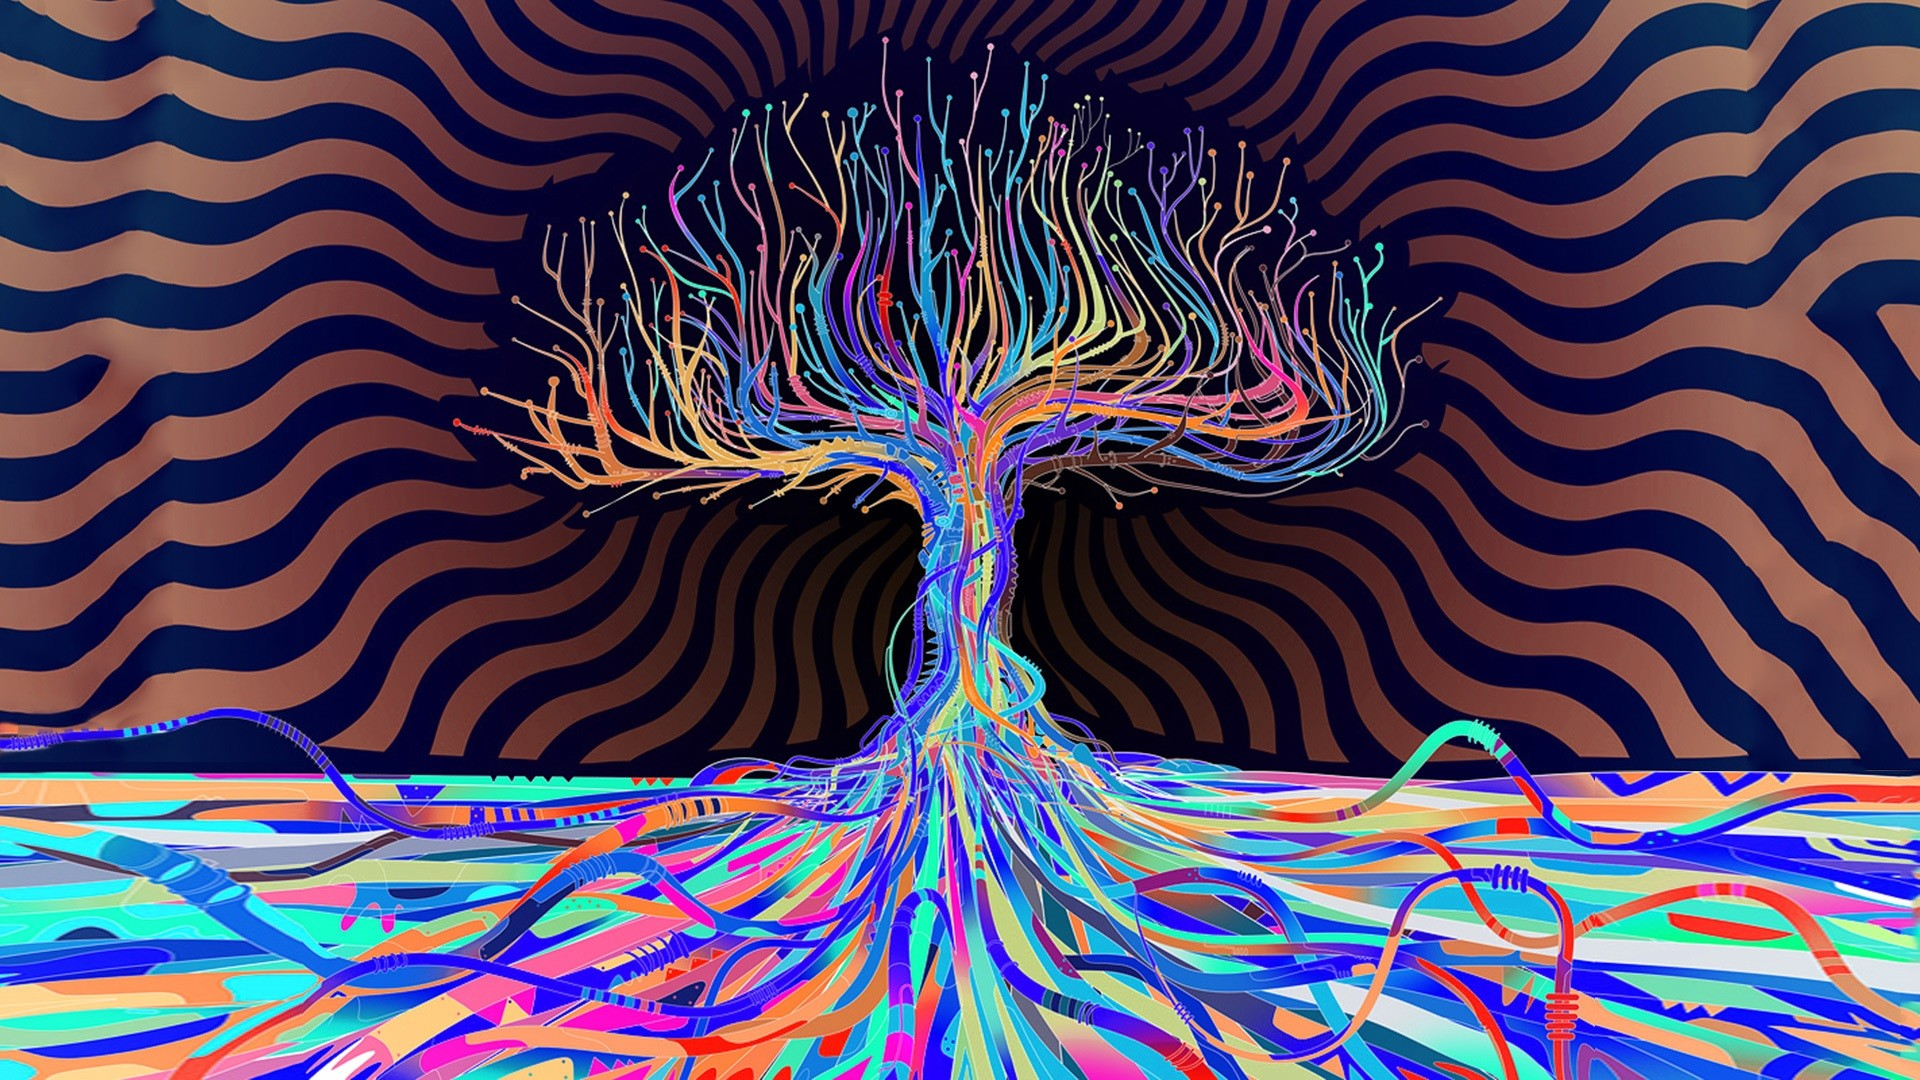 Psychedelic HD Wallpapers Wallpaper | HD Wallpapers | Pinterest |  Psychedelic, Hd wallpaper and Wallpaper